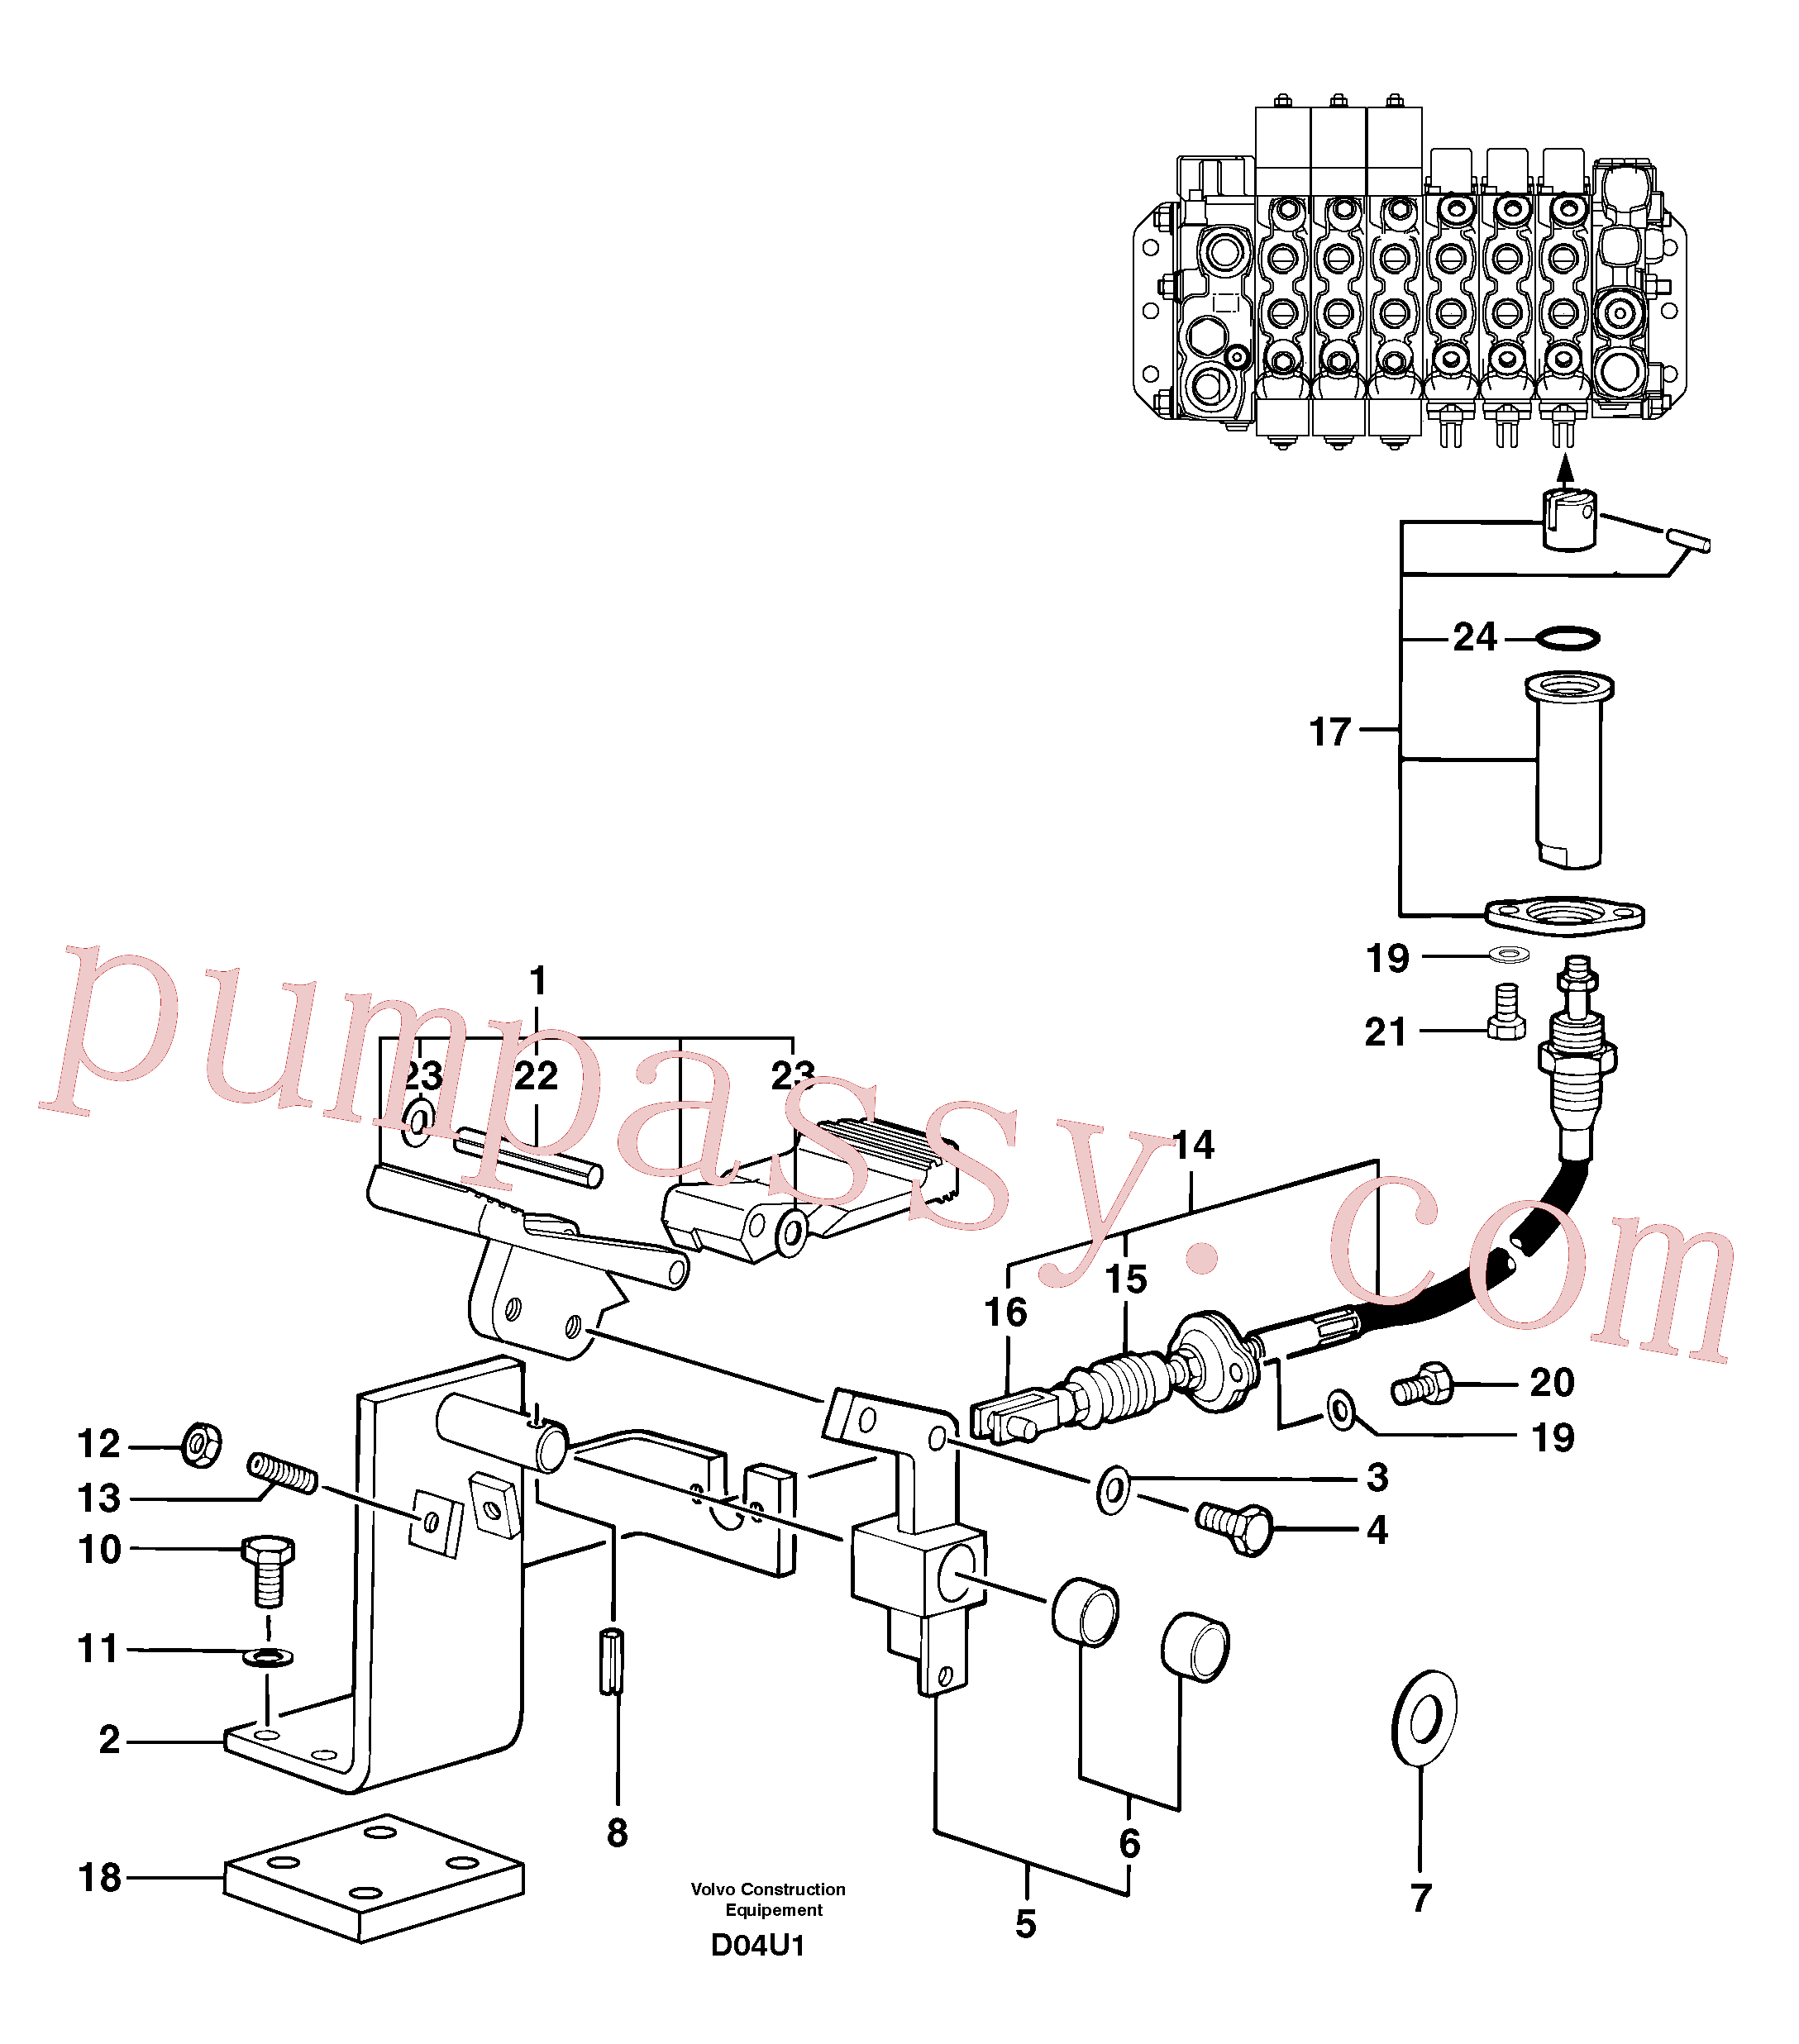 PJ4490021 for Volvo Control pedal : accessories on attachment - 90 l/m(D04U1 assembly)